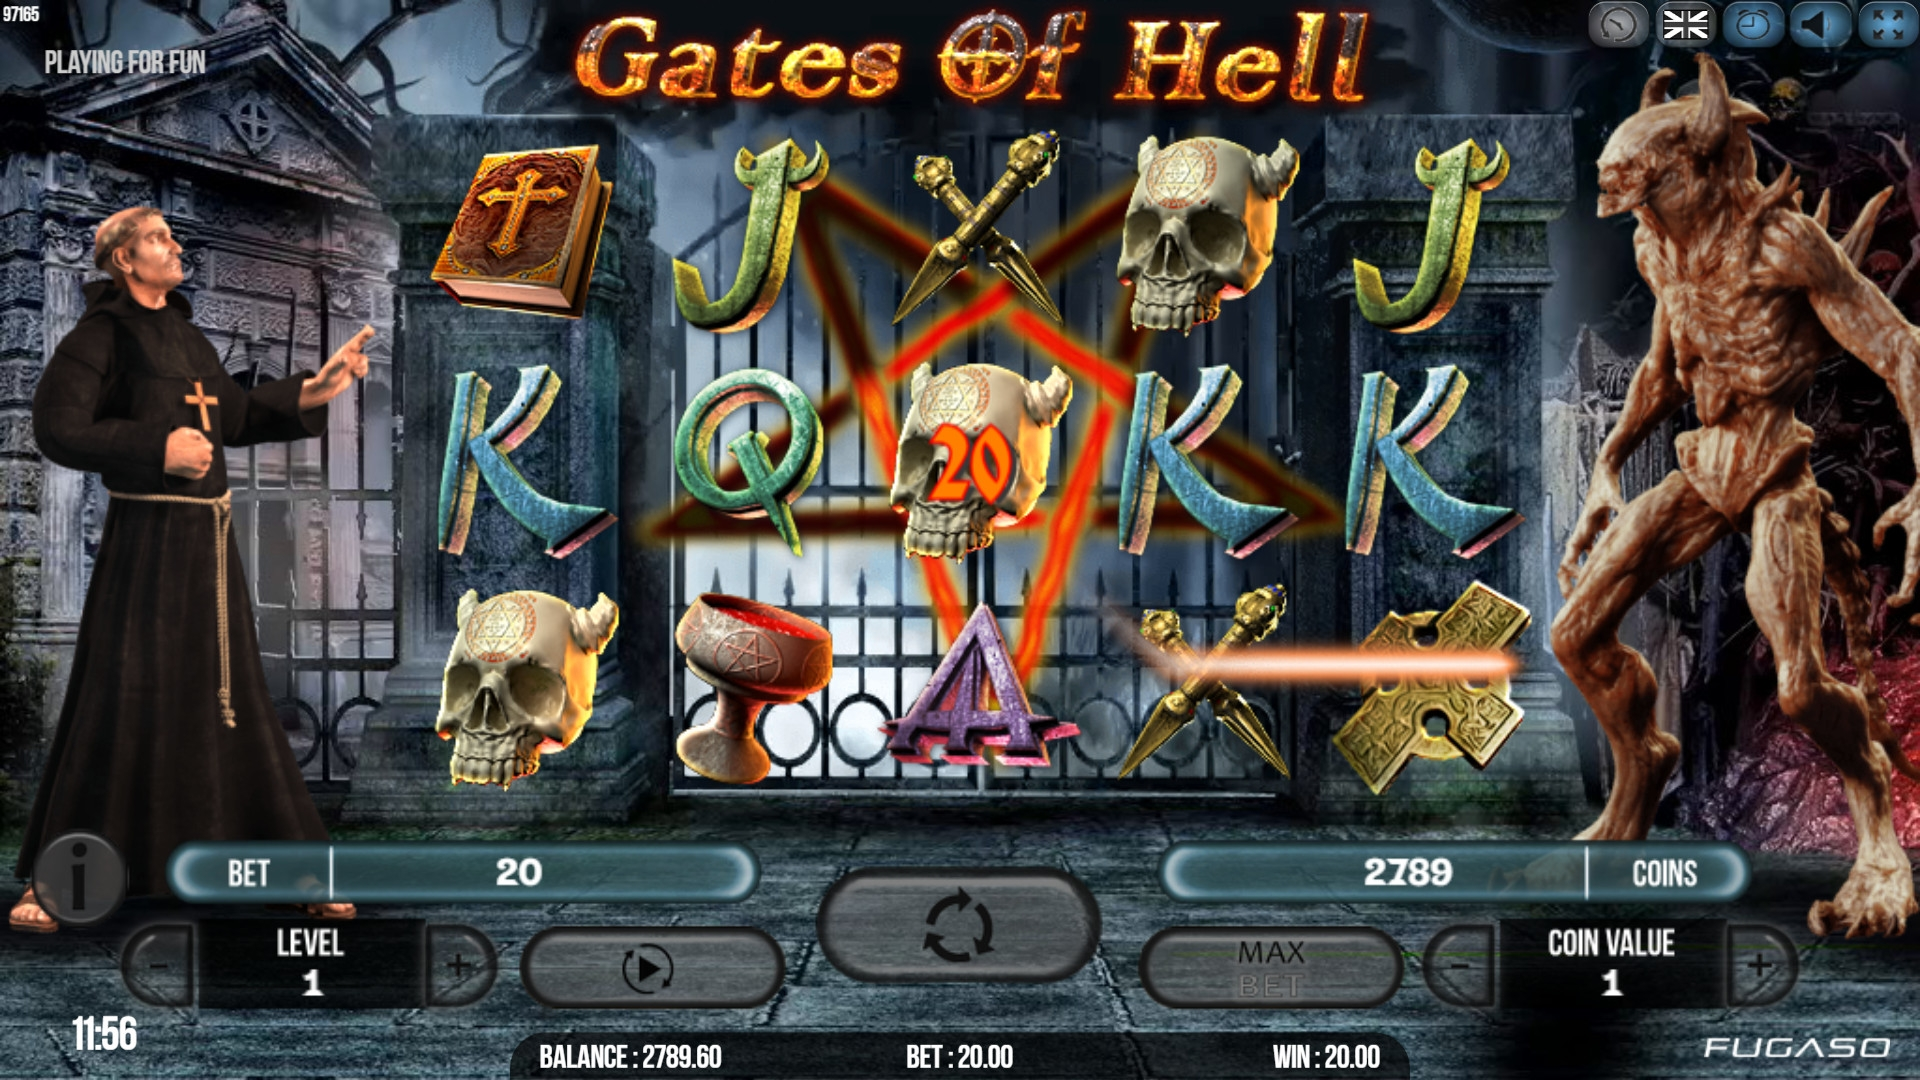 Gates of Hell (Gates of Hell) from category Slots